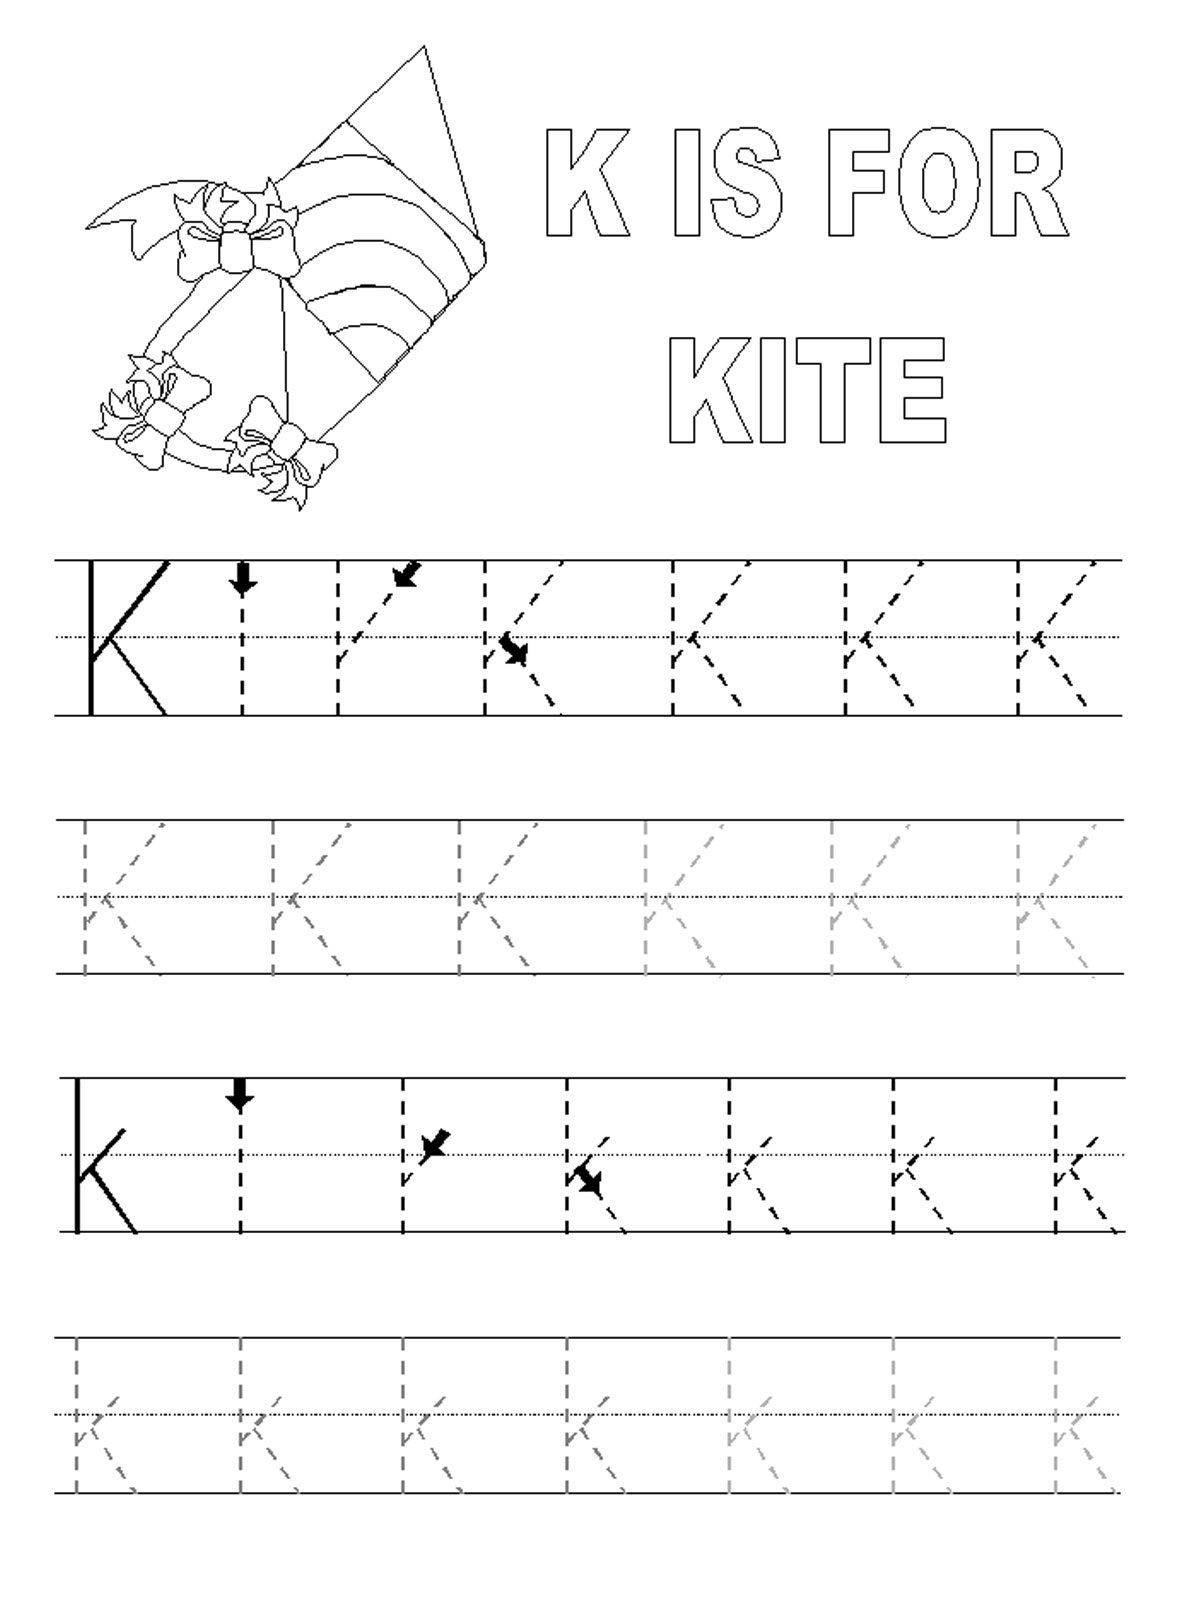 Printable Alphabet Tracing Pages (With Images) | Alphabet inside Alphabet Tracing Coloring Worksheets